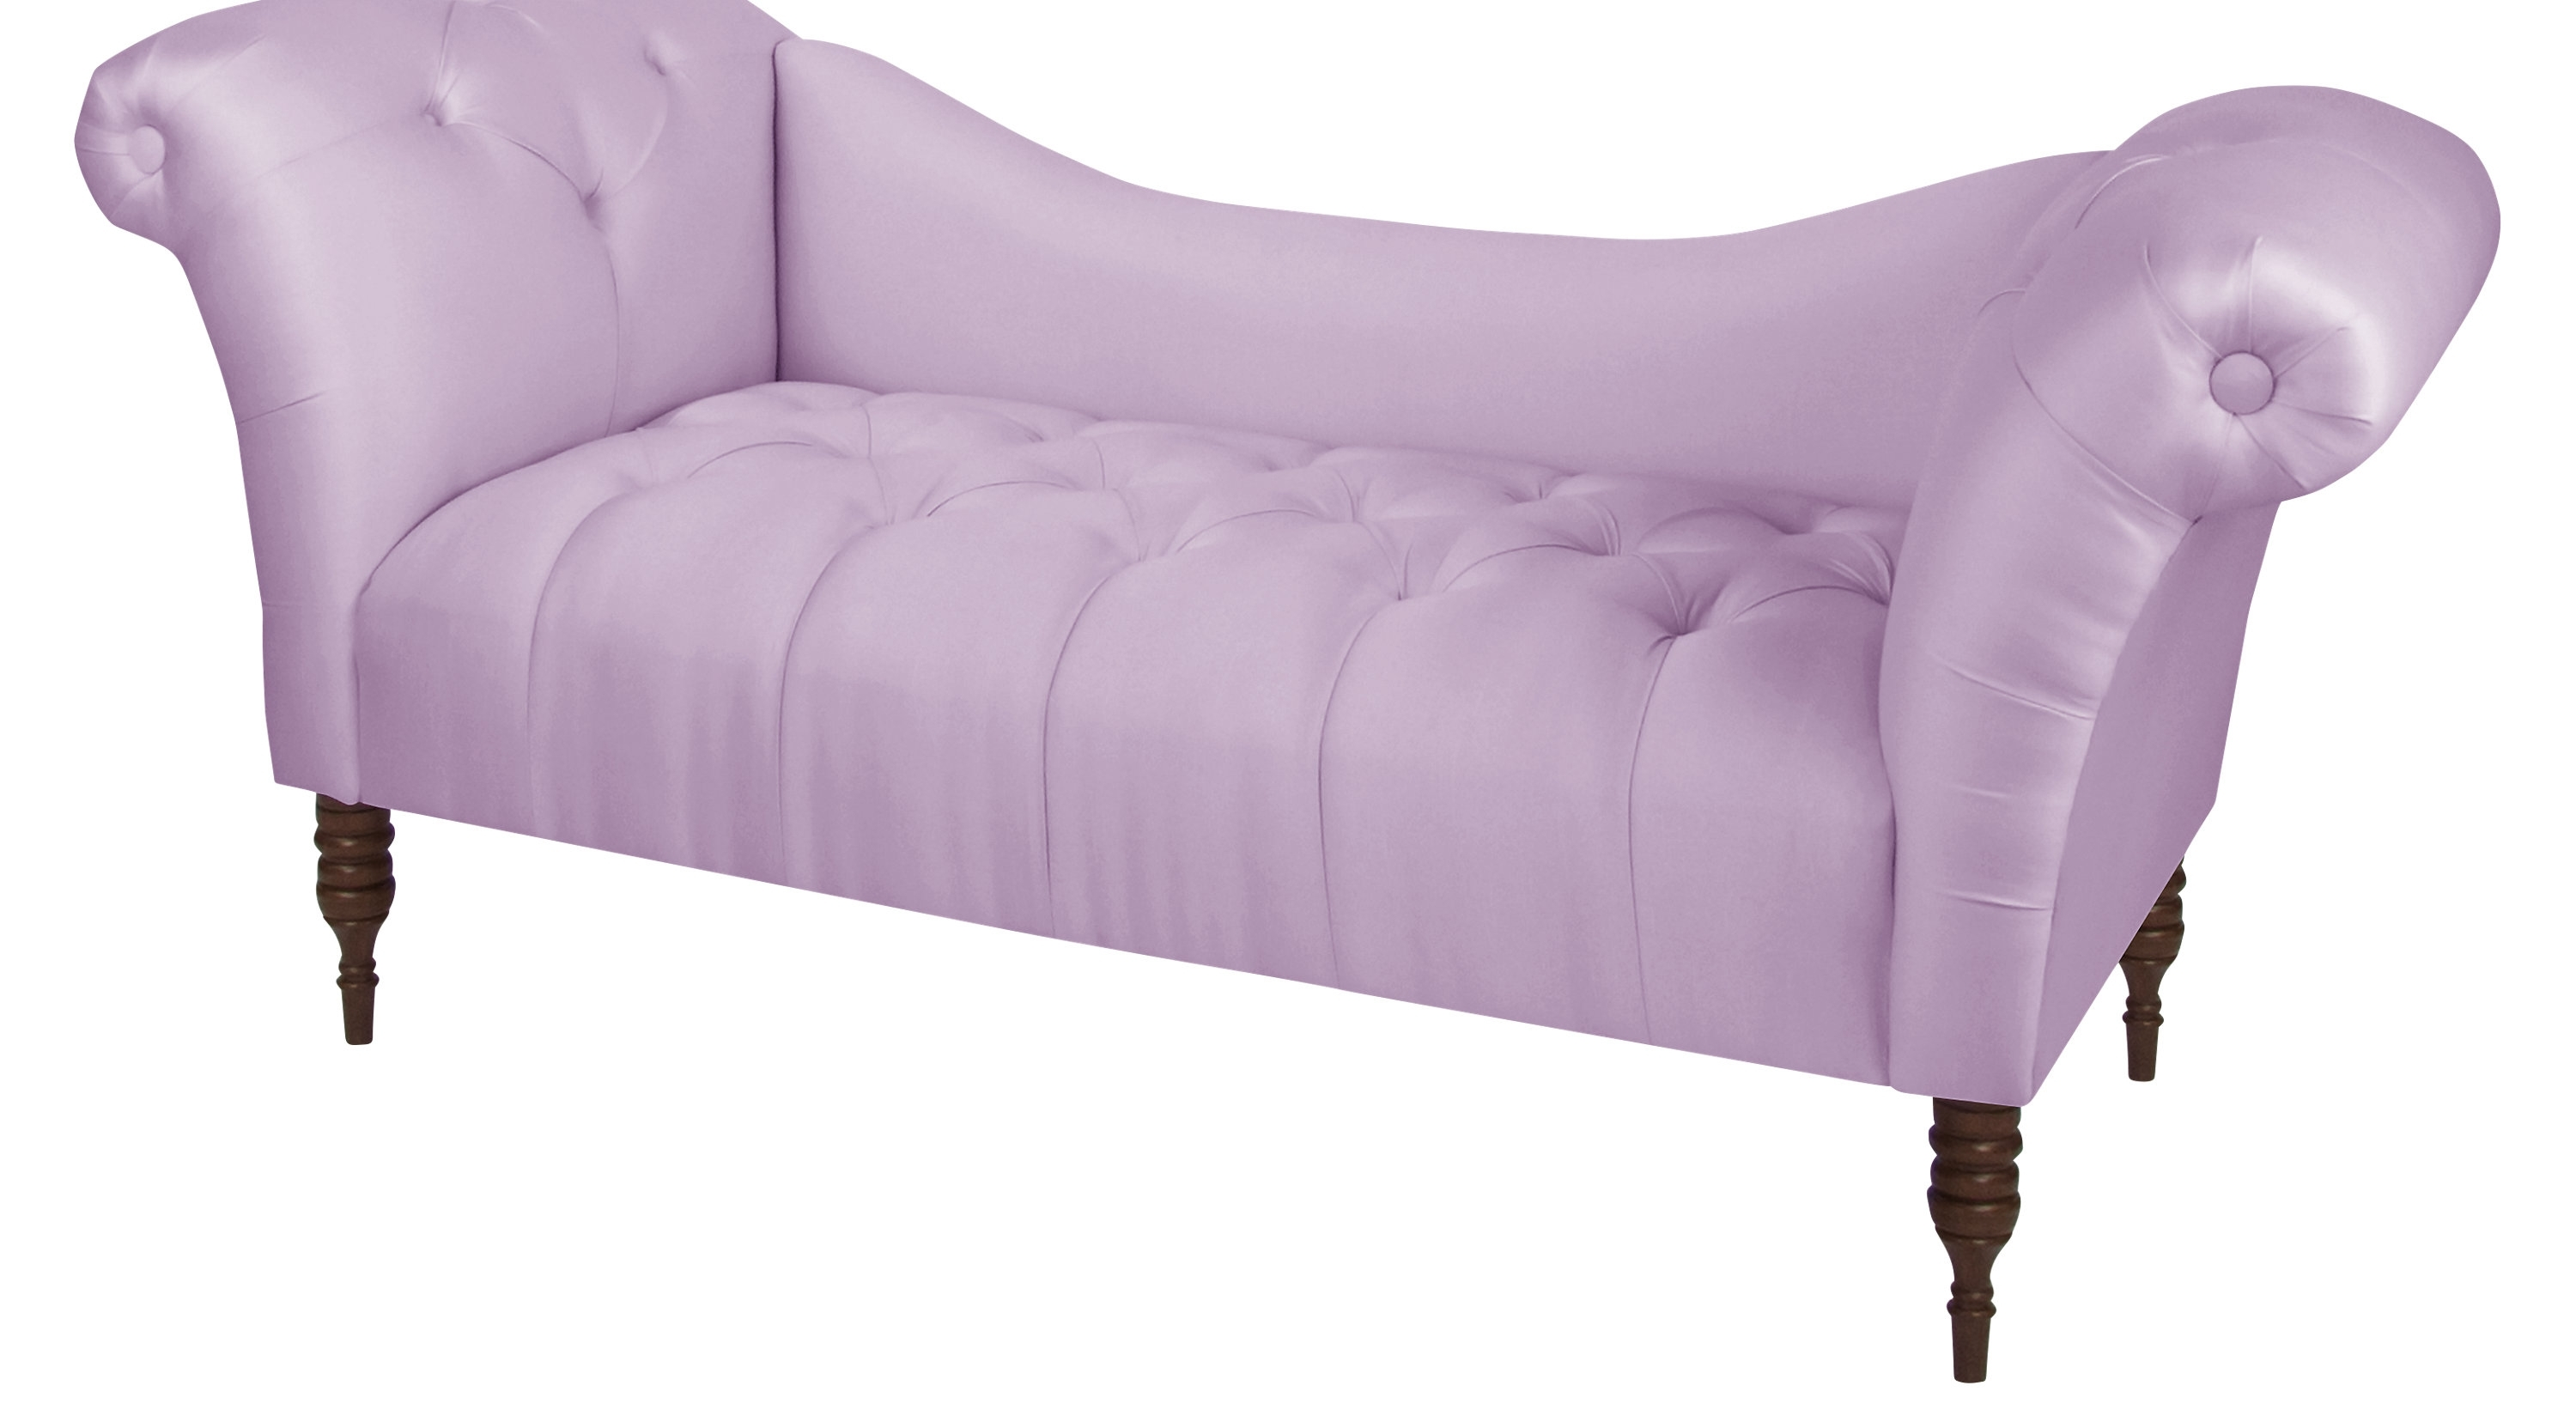 Favorite Pink Chaises Inside Blue Chaises – Blue Chaise Lounge Sofas (View 5 of 15)